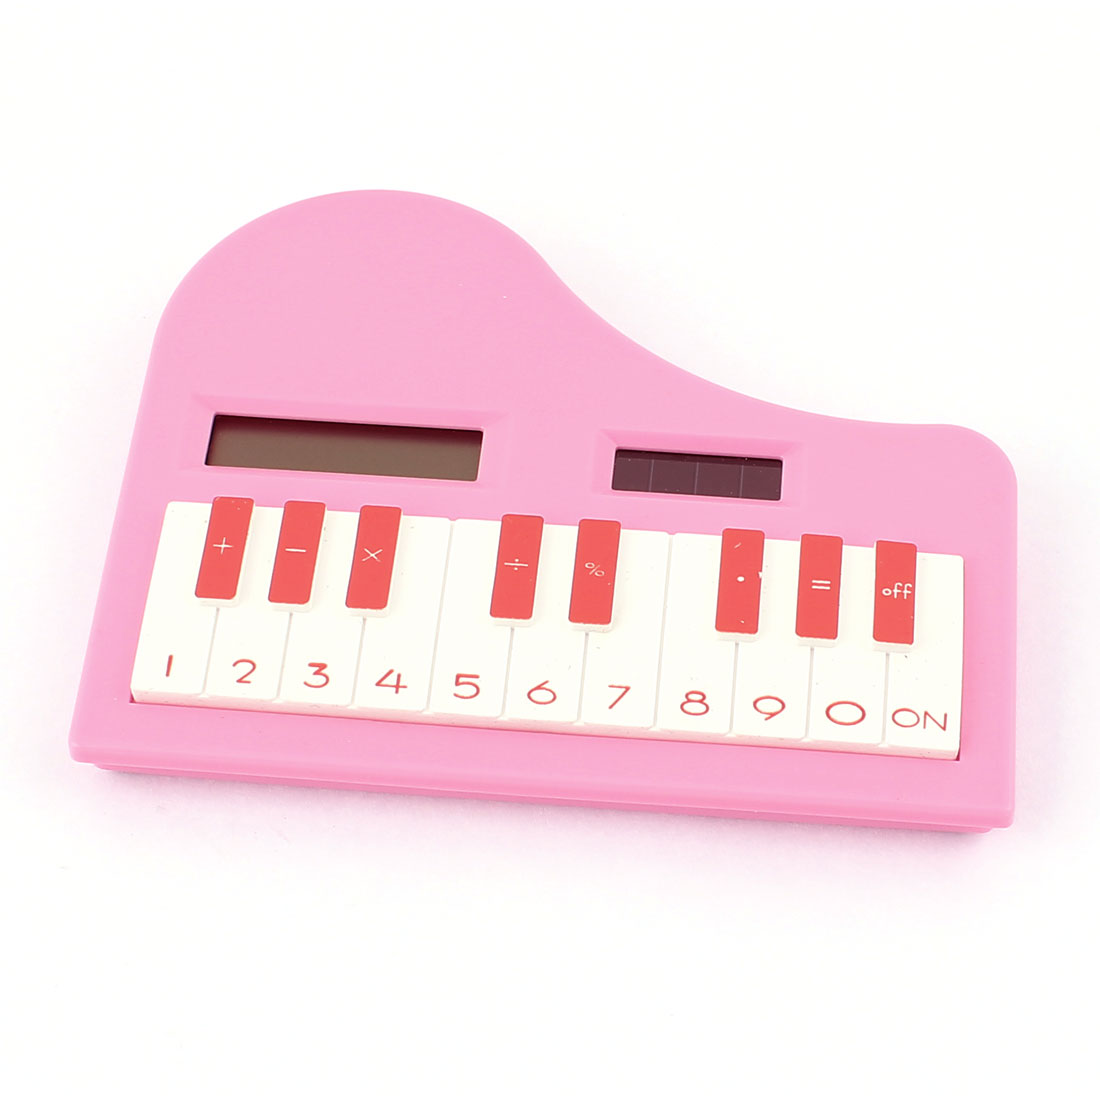 Piano Shape 8 Digits LCD Display Solar Power Electronic Pocket Calculator Pink